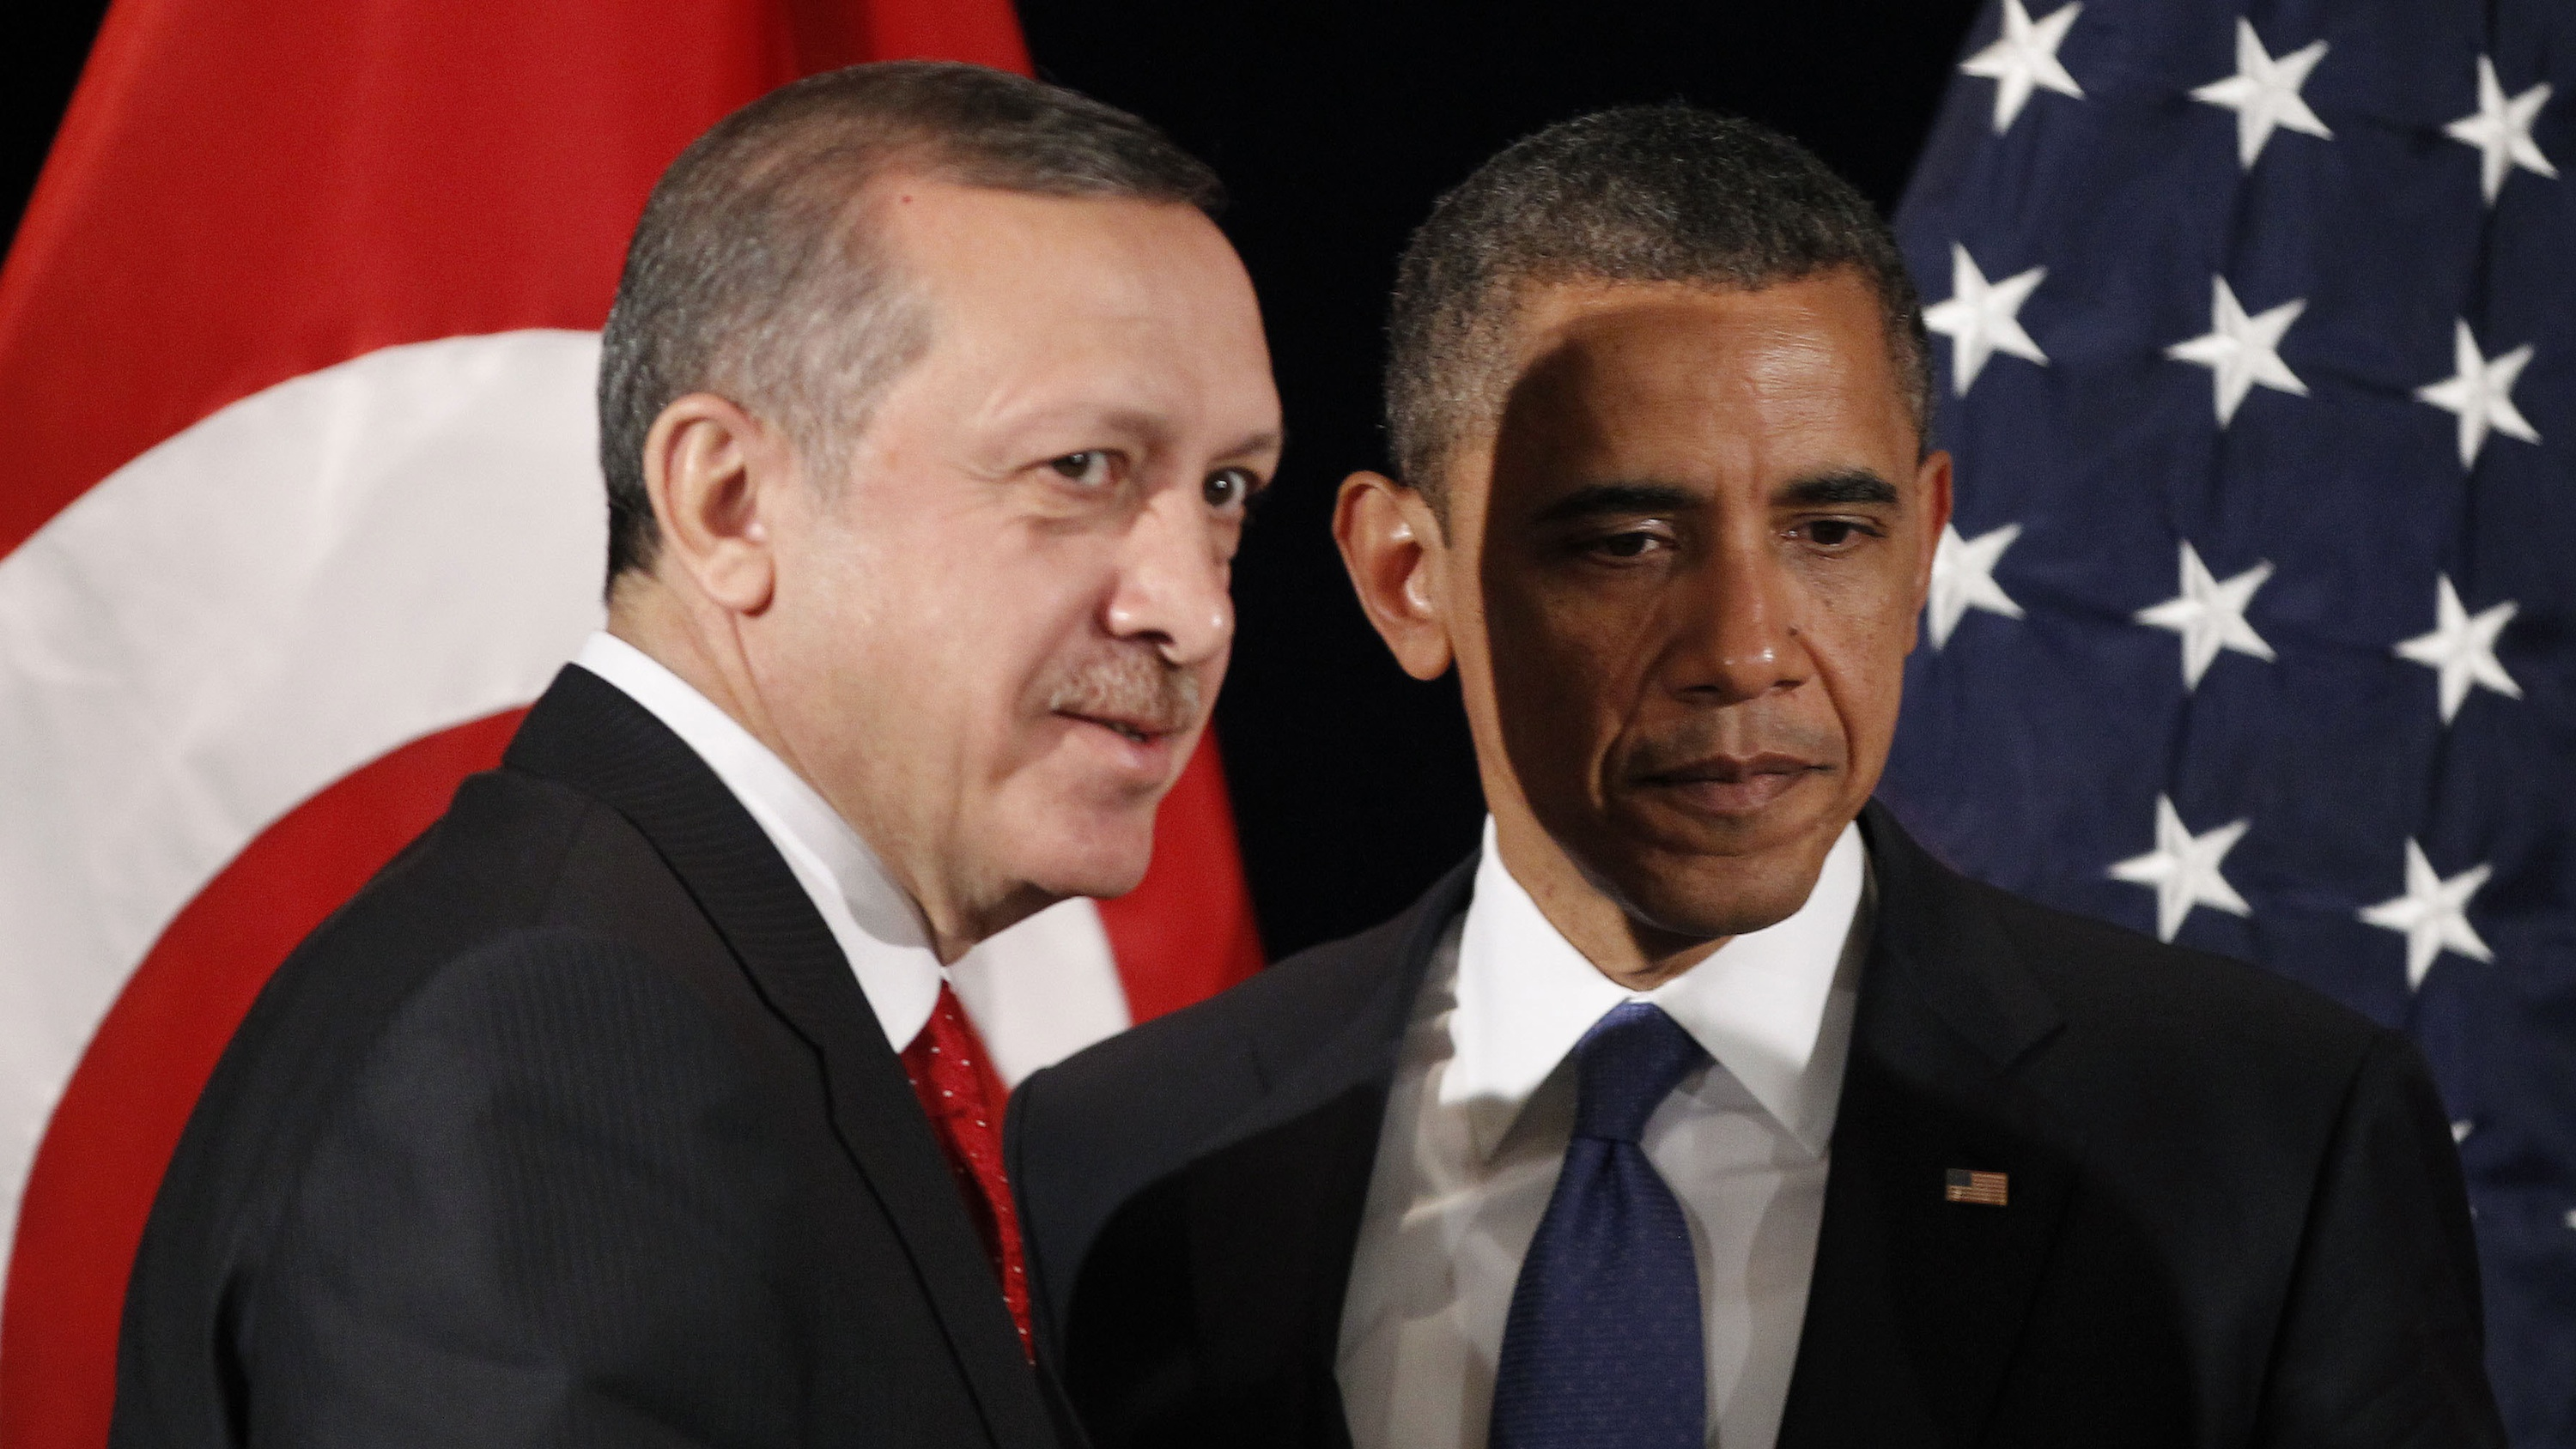 Turkish president Recep Tayyip Erdogan (left), a passionate denier of the Armenian genocide, with US president Barack Obama (right) in 2015.